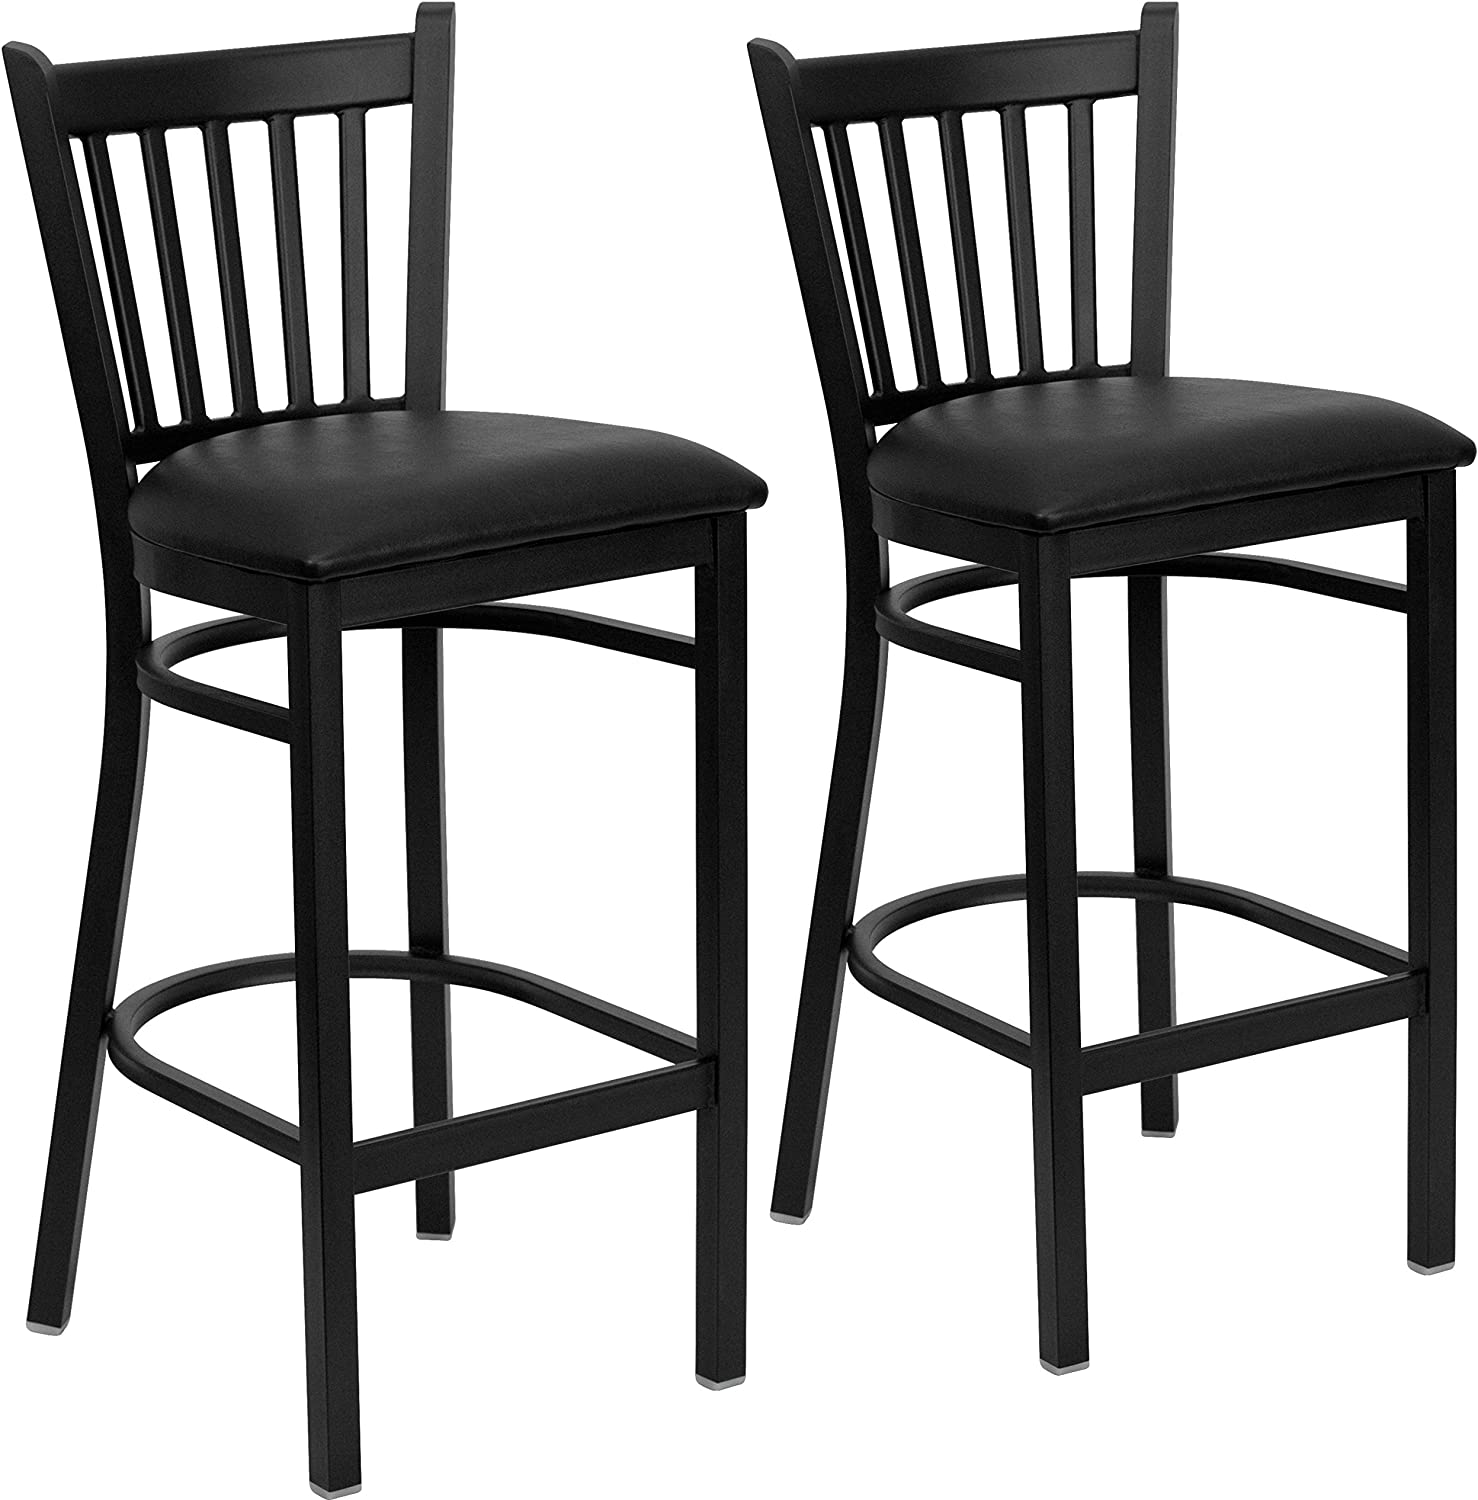 Flash Furniture 2 Pk. Hercules Series Black greenical Back Metal Restaurant Barstool - Black Vinyl Seat